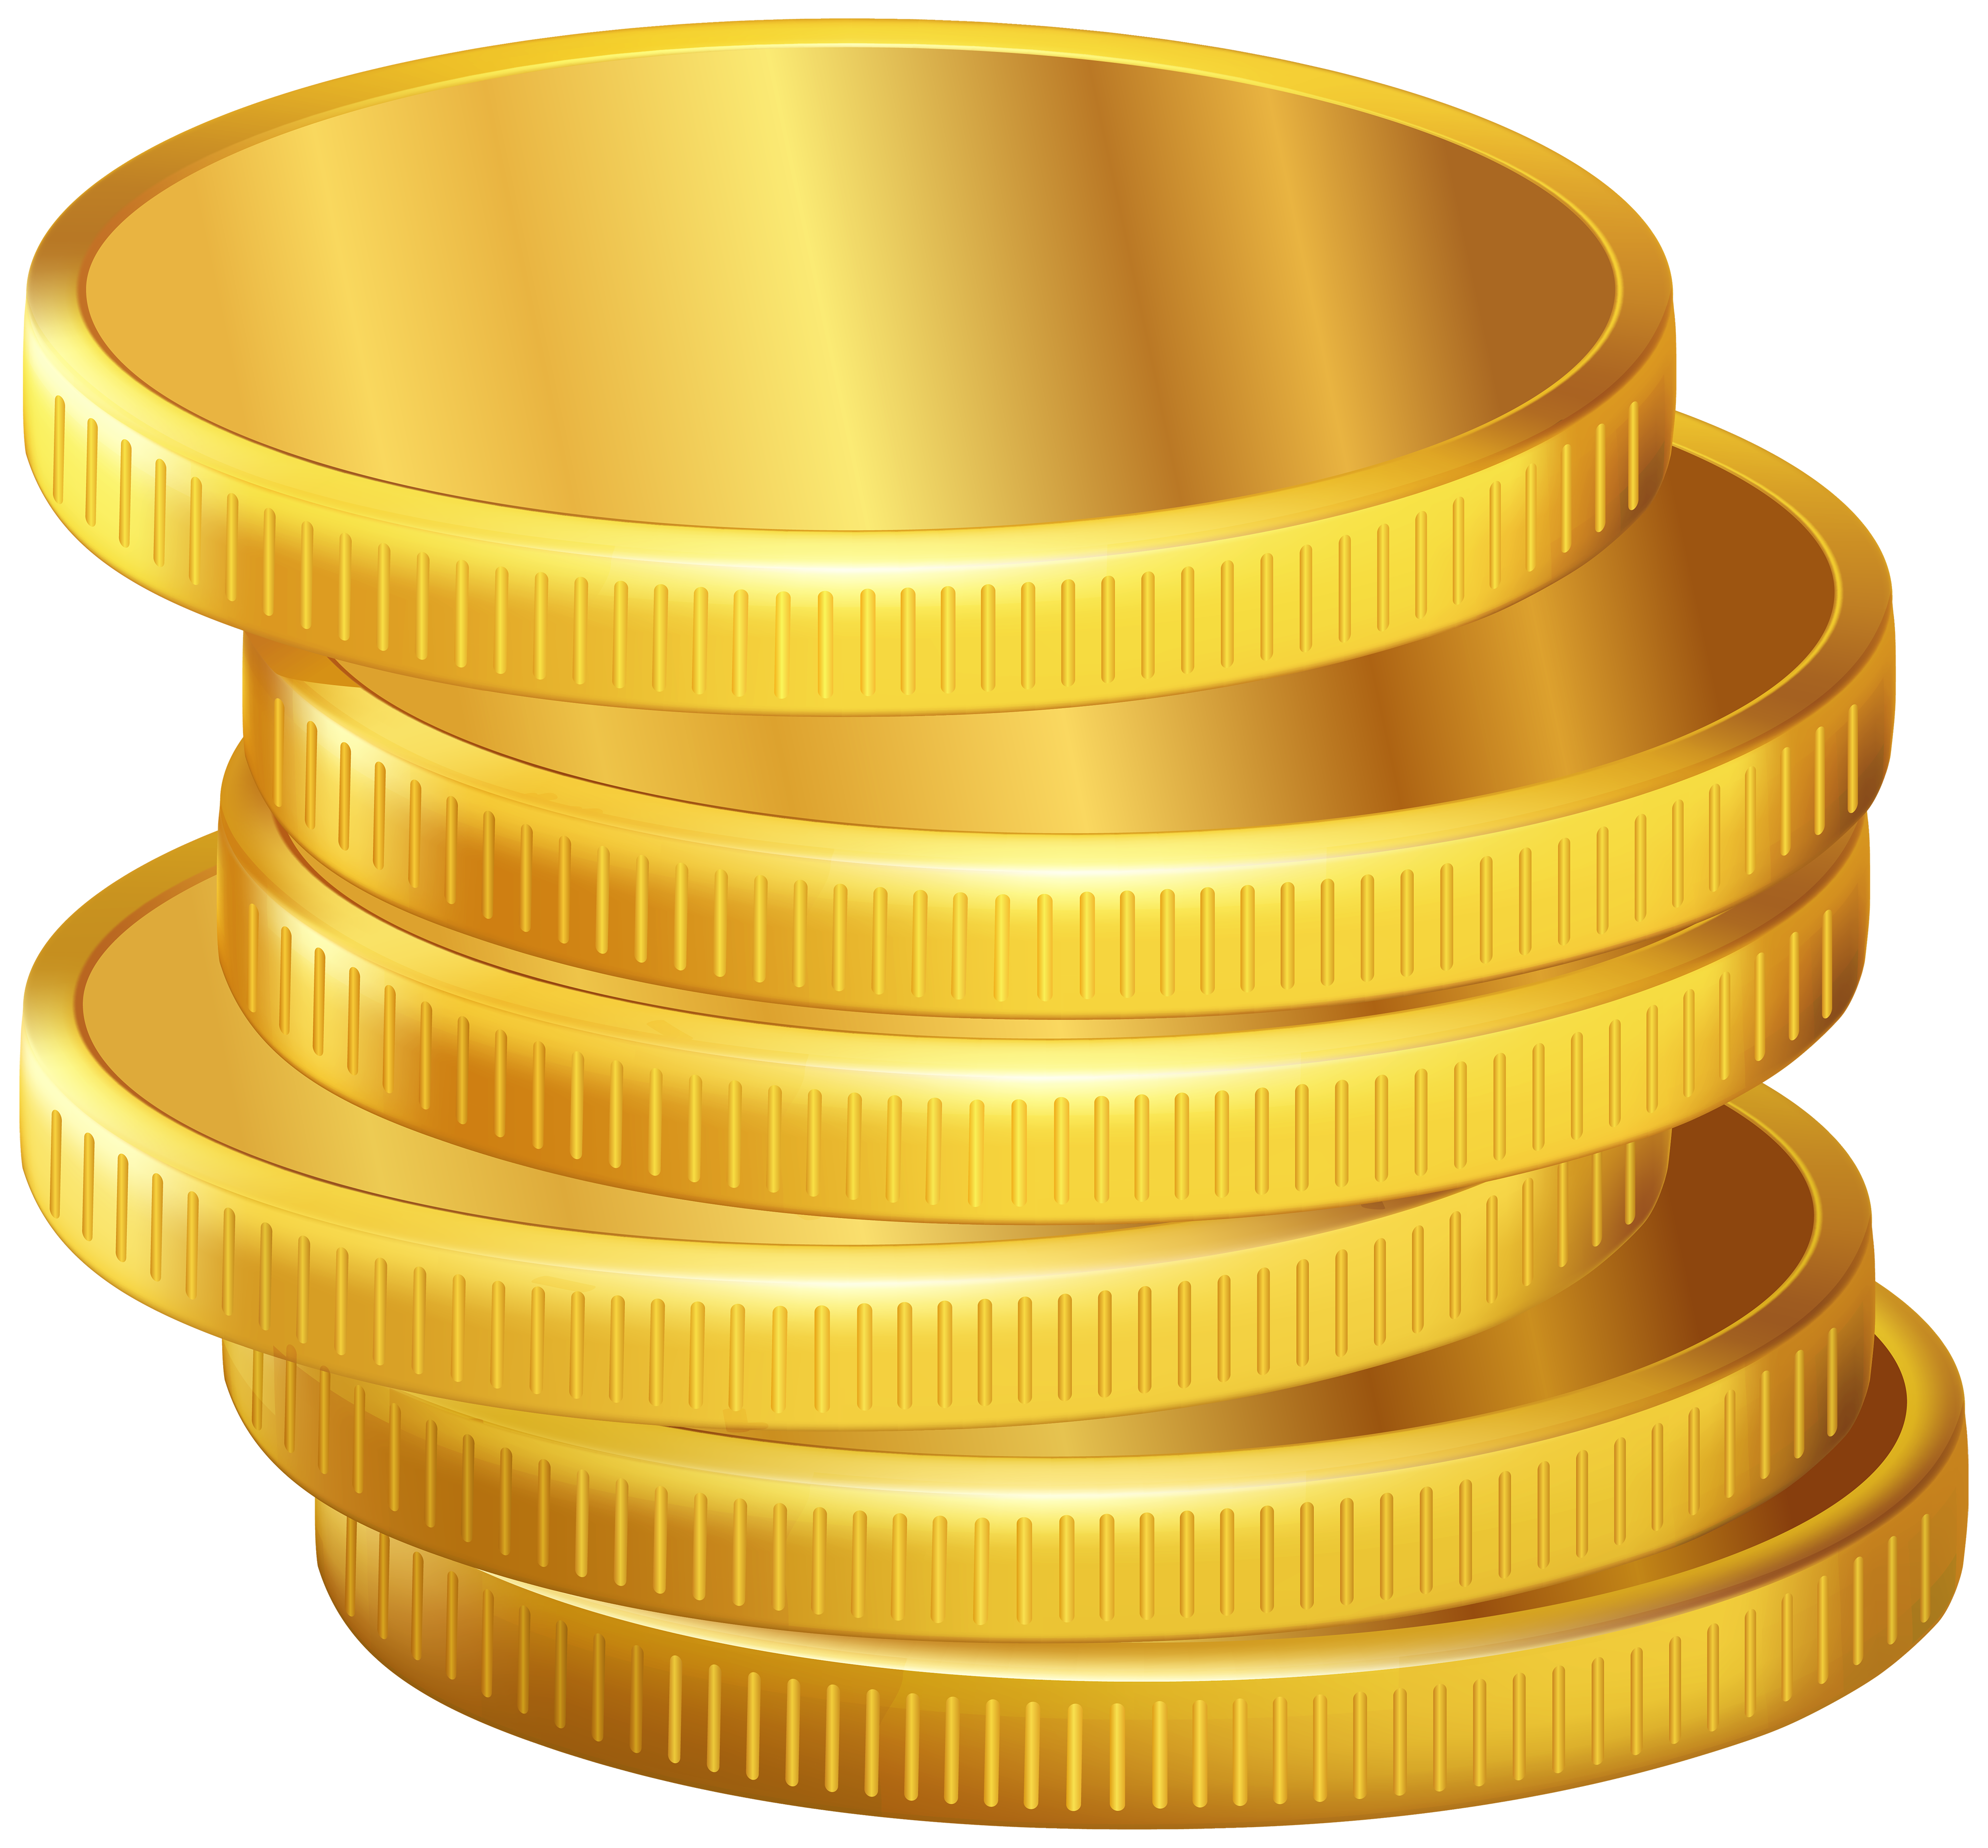 Coins money clipart graphic transparent library Golden Coins PNG Clipart - Best WEB Clipart graphic transparent library